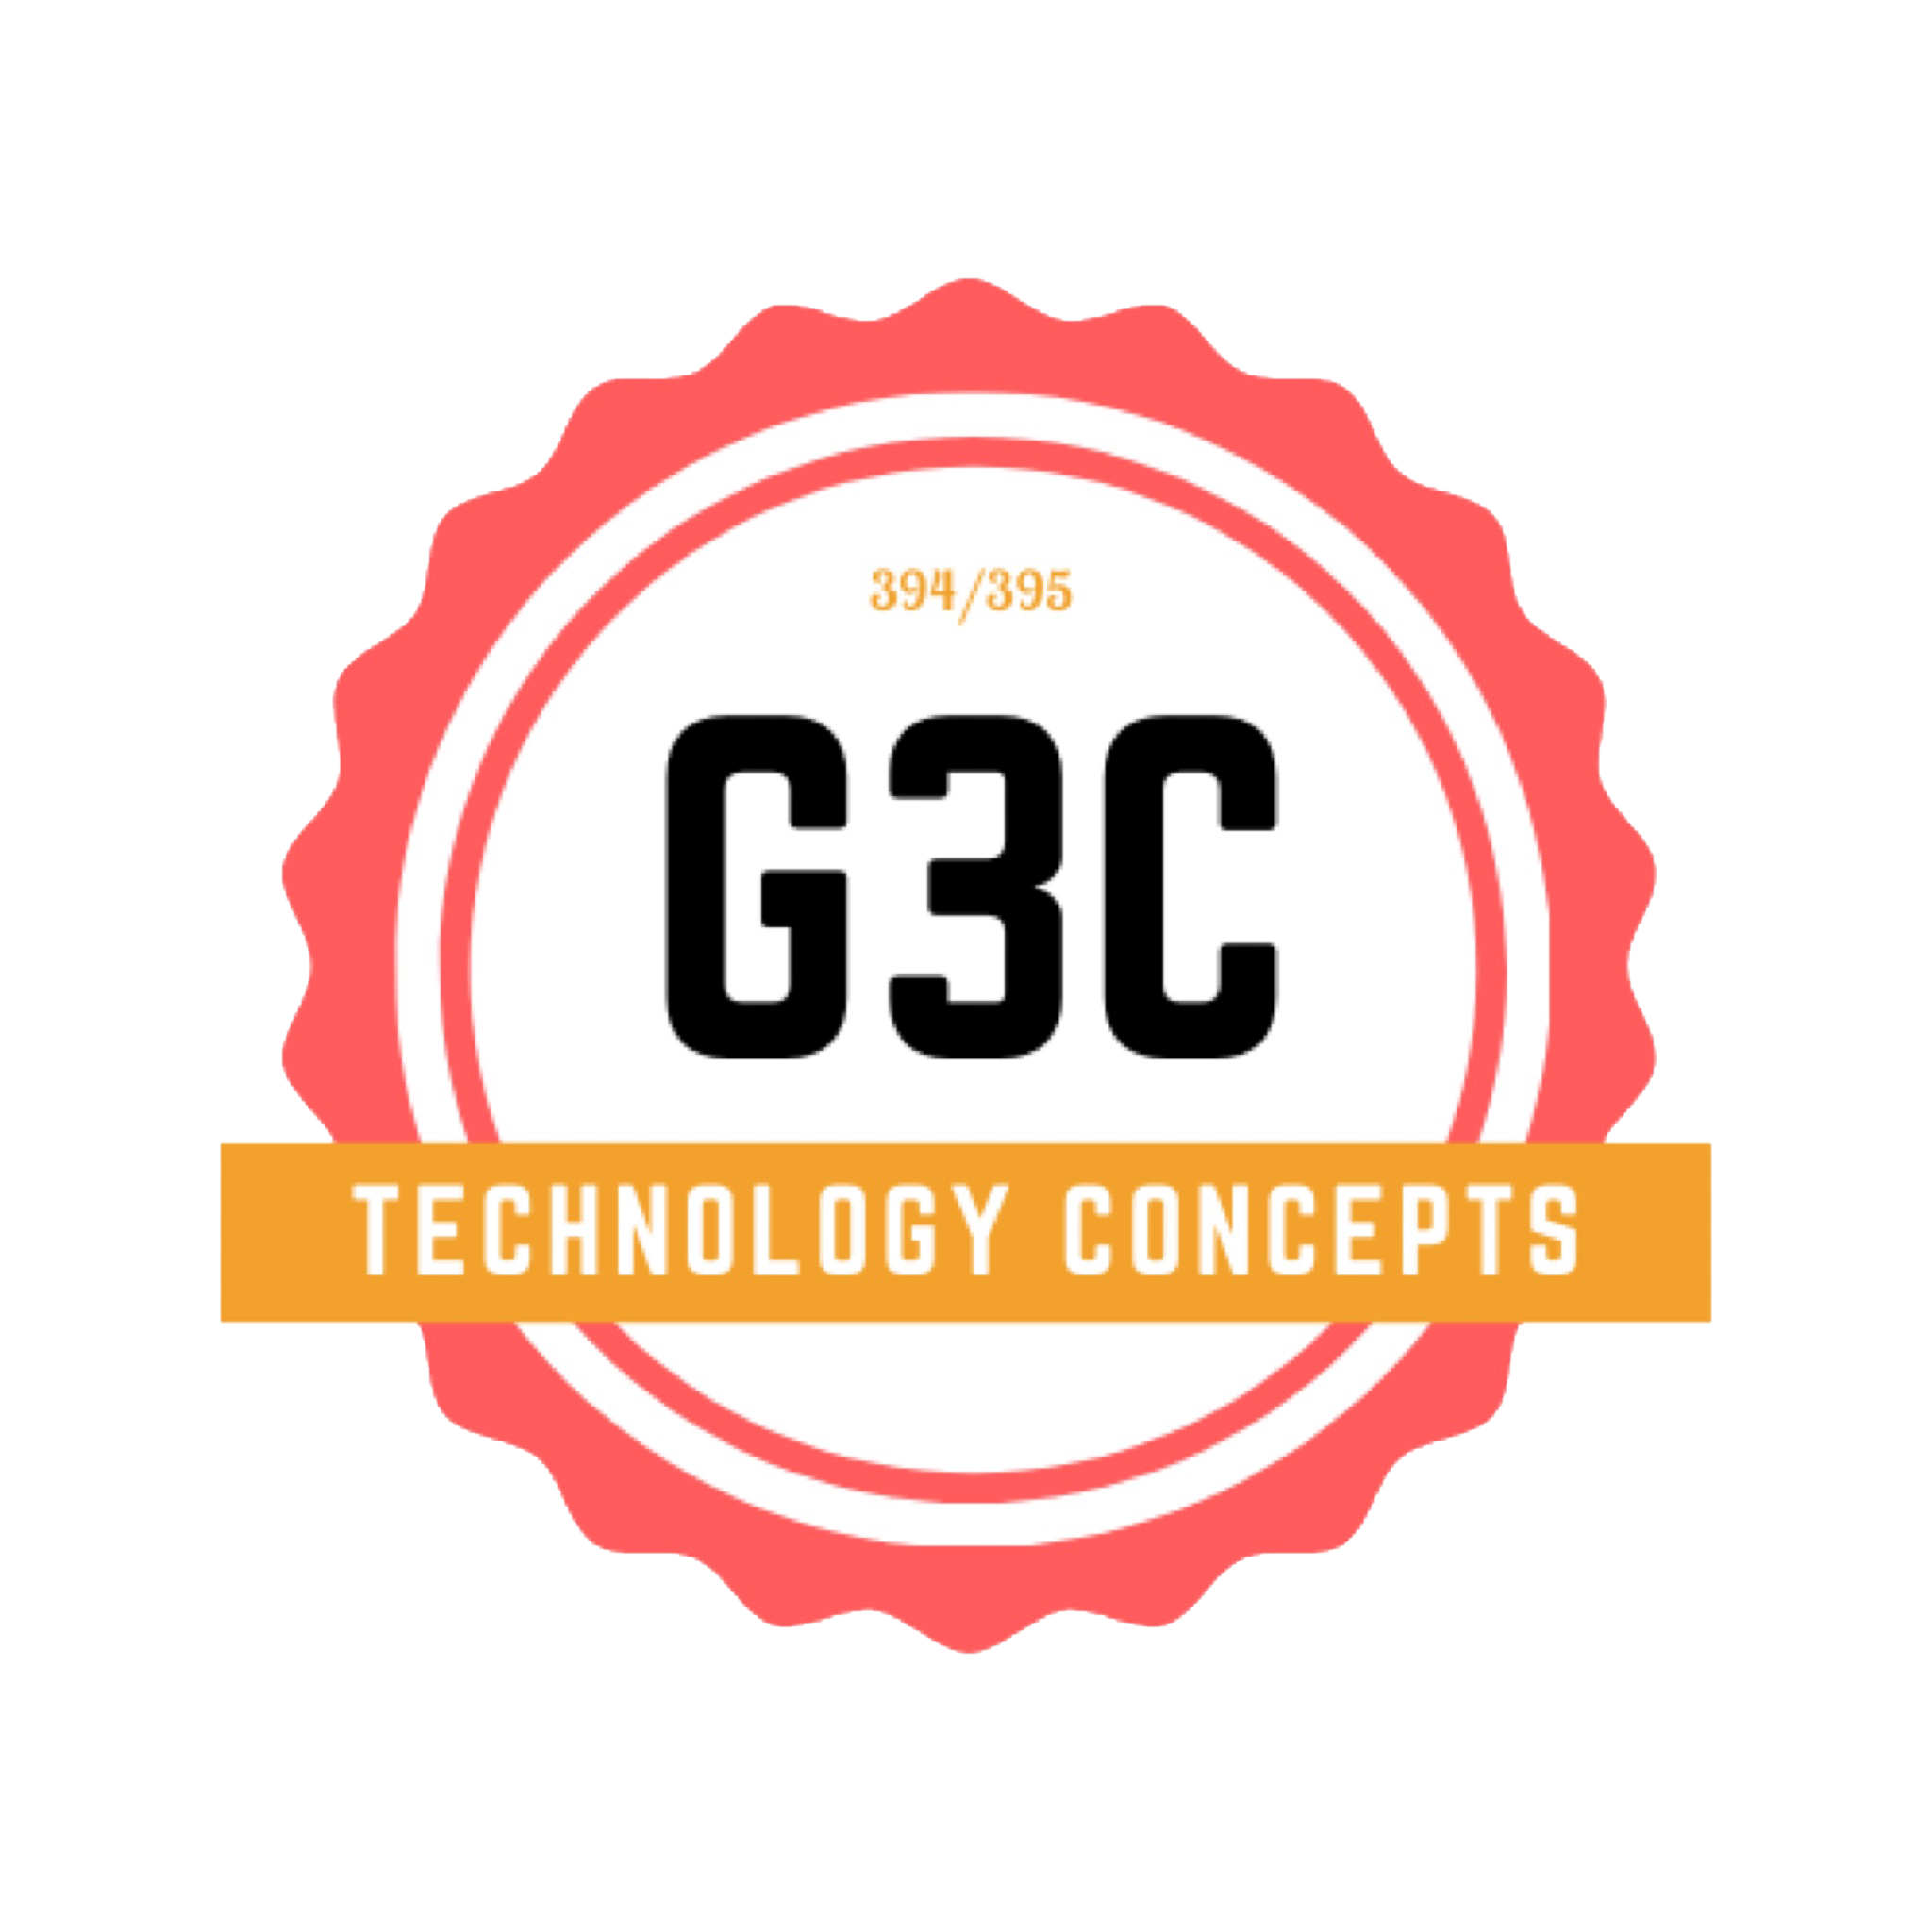 """A very special thank you to my CSEC 395 capstone group. To the very talented nerds in """"Team G3C"""": I couldn't have asked for a better group of people to work alongside, thank you for your patience and your hard work. We did it!"""